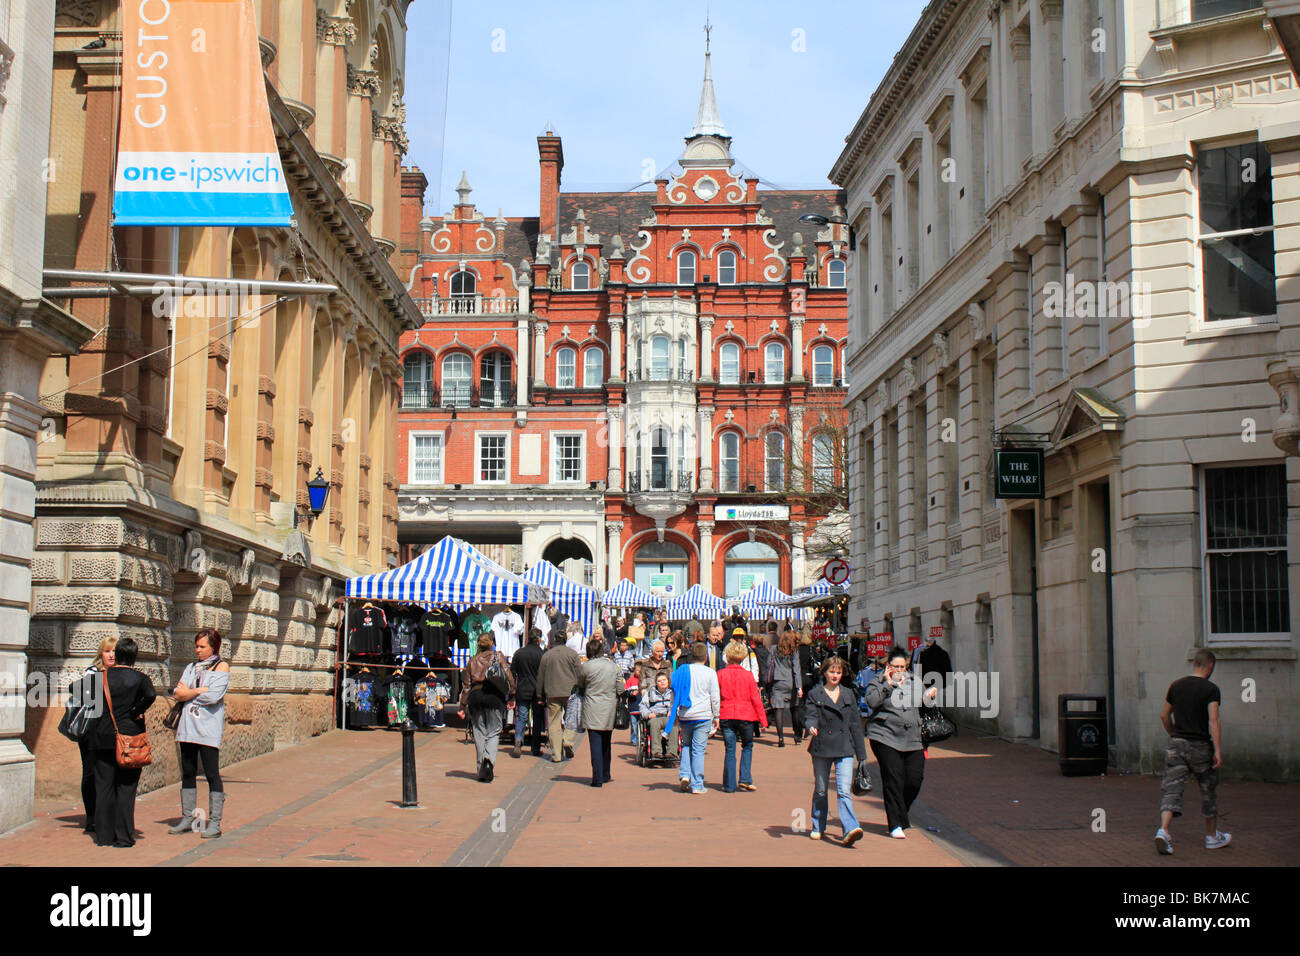 ipswich town centre shopping county town of suffolk east. Black Bedroom Furniture Sets. Home Design Ideas